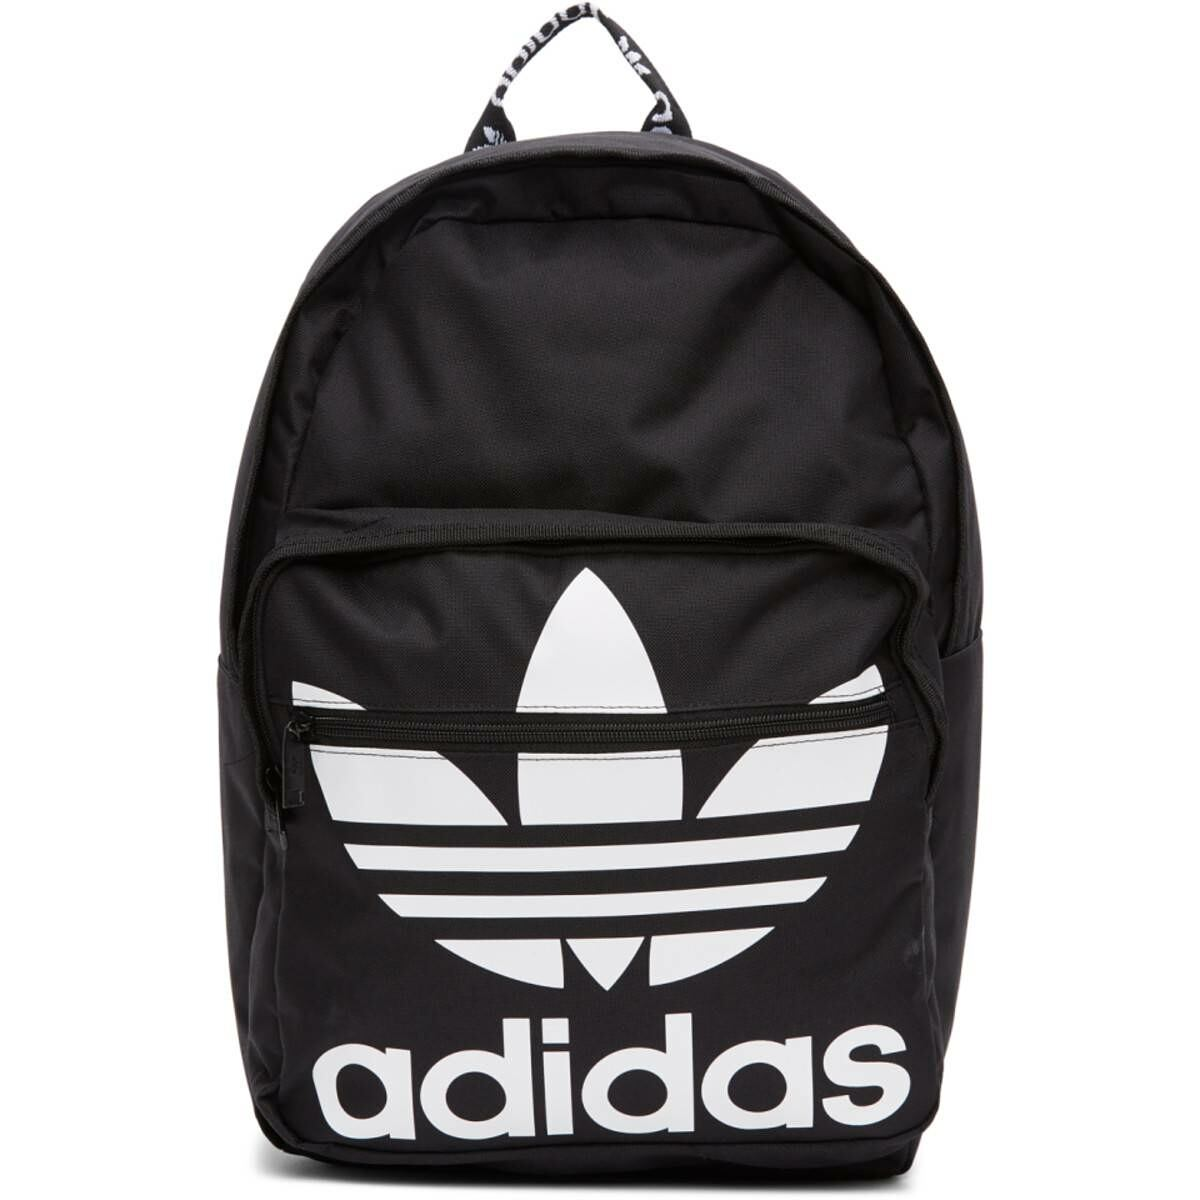 adidas Originals Black Trefoil Backpack Ssense USA MEN Men ACCESSORIES Mens BAGS